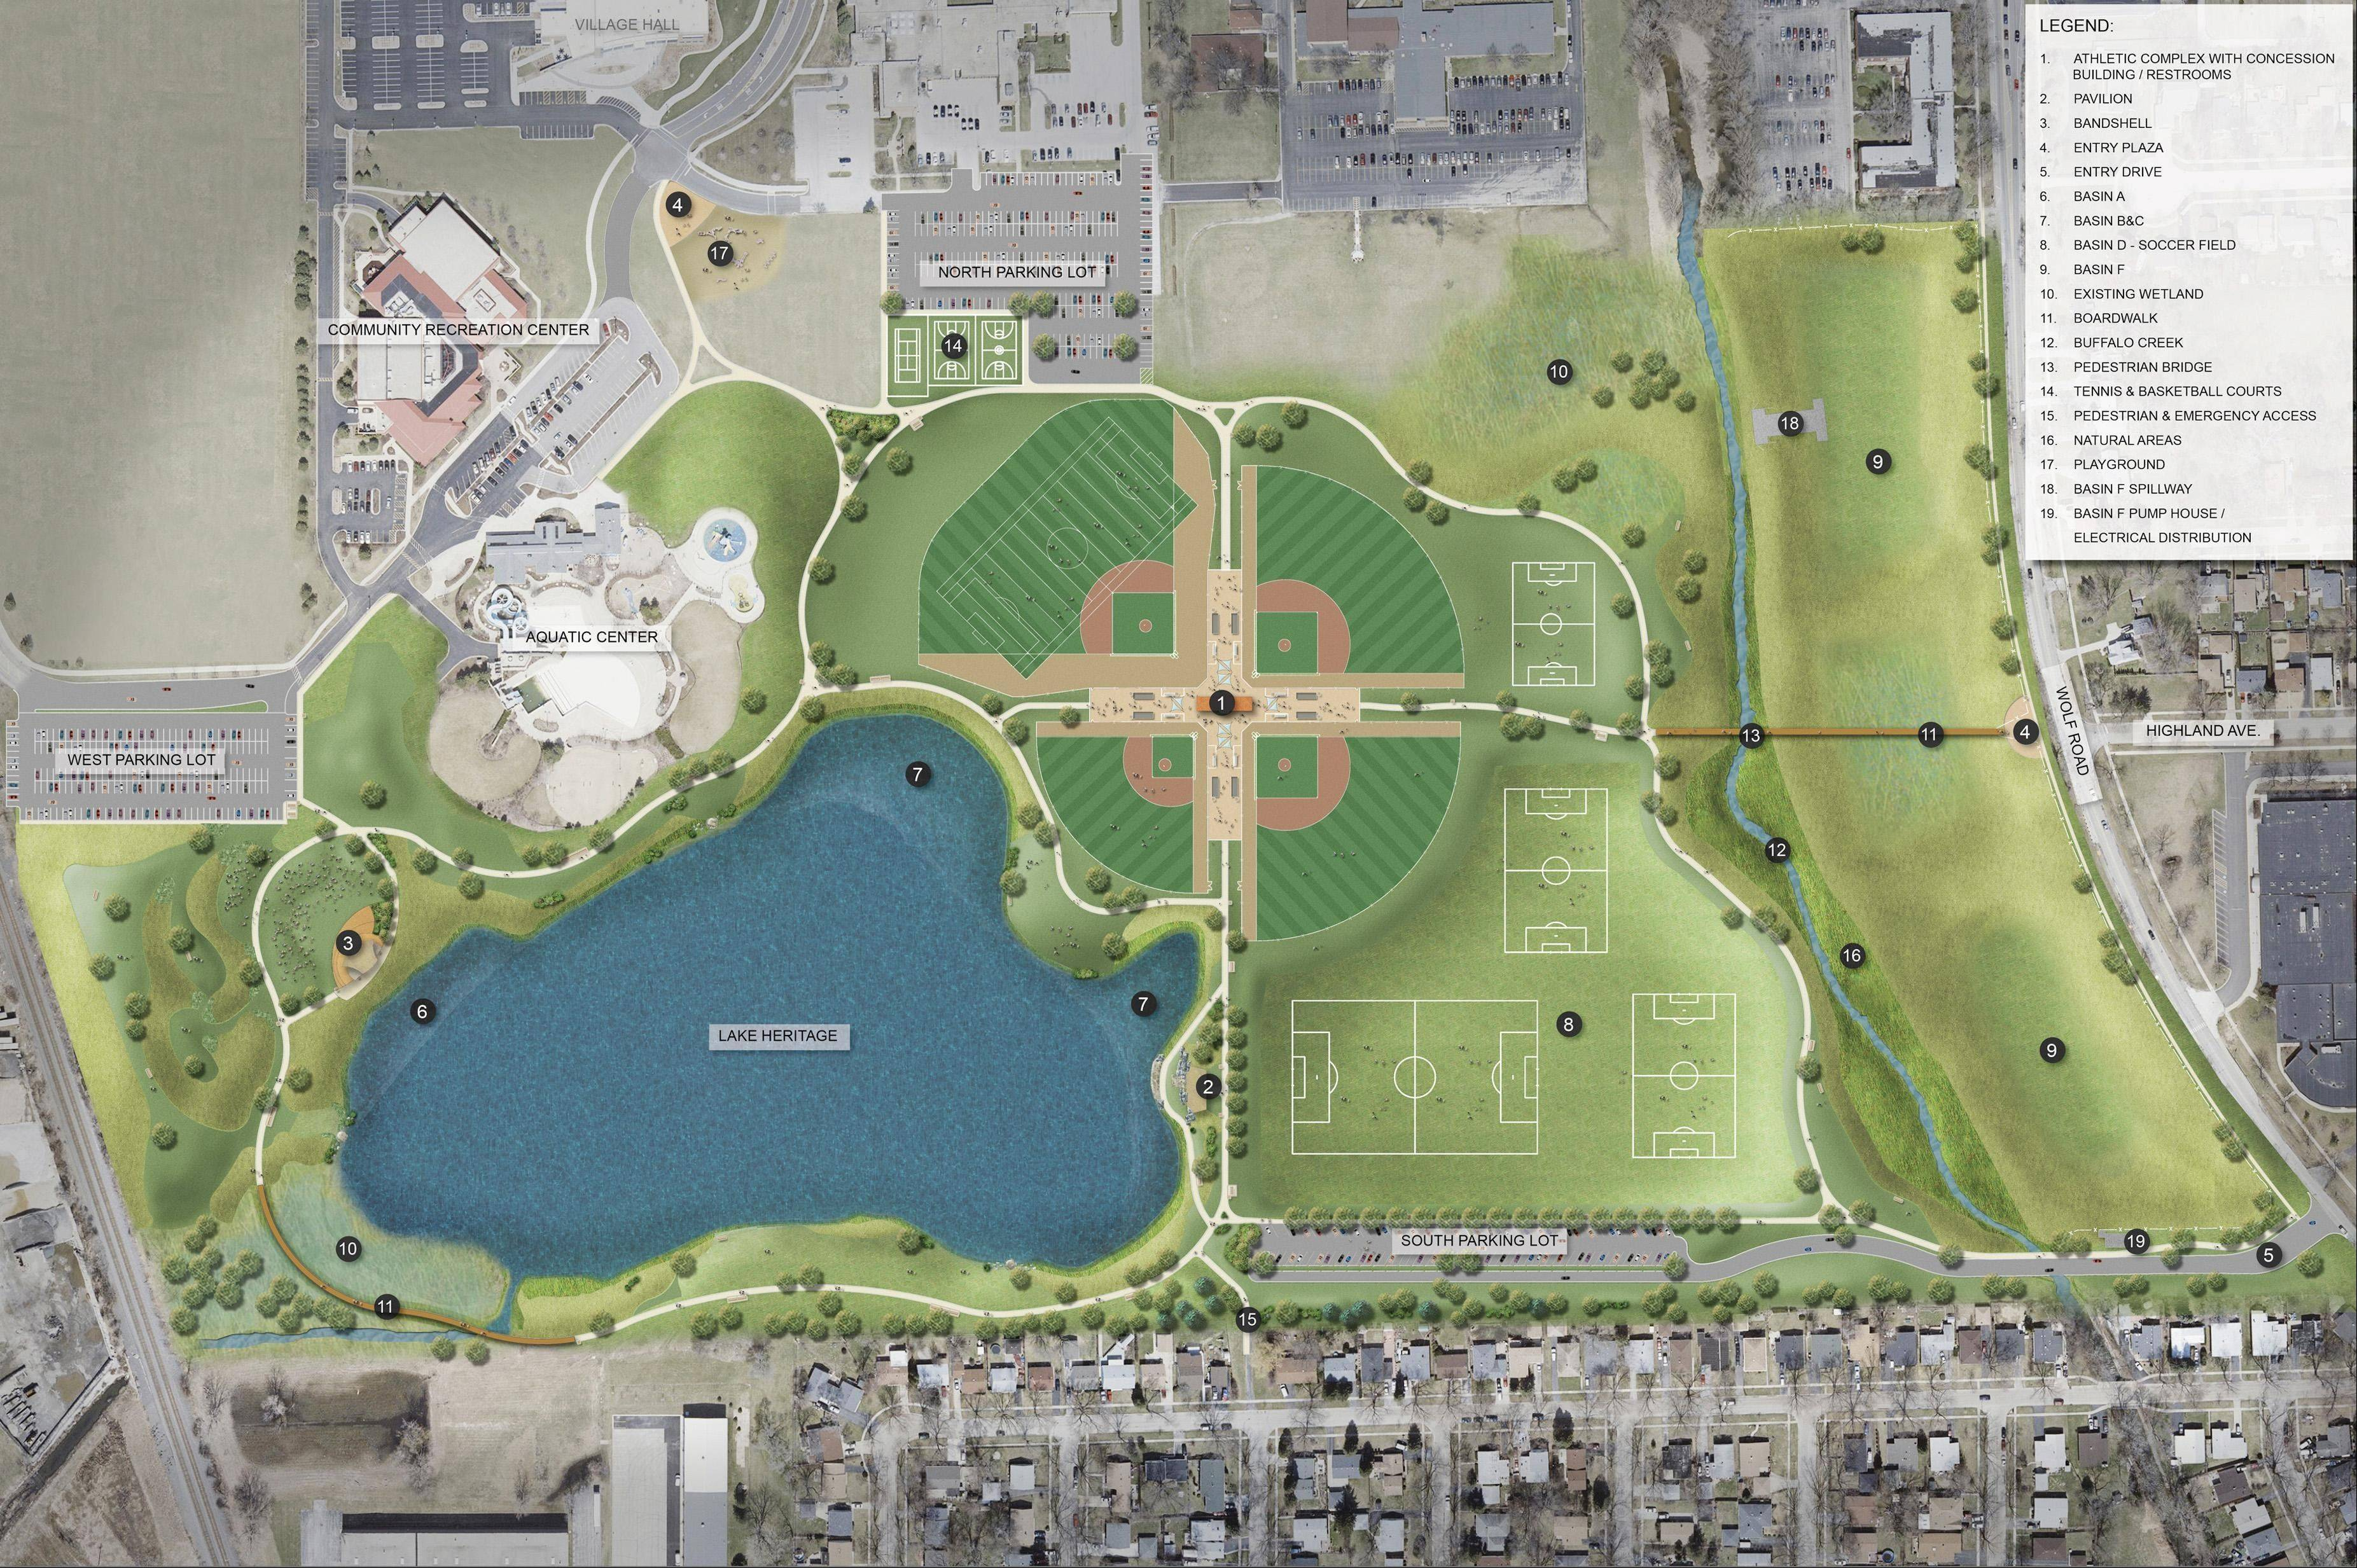 The plan for Heritage Park in Wheeling will go before the village board for approval on July 18. The renovation will be funded by the Metropolitan Water Reclamation District of Greater Chicago.